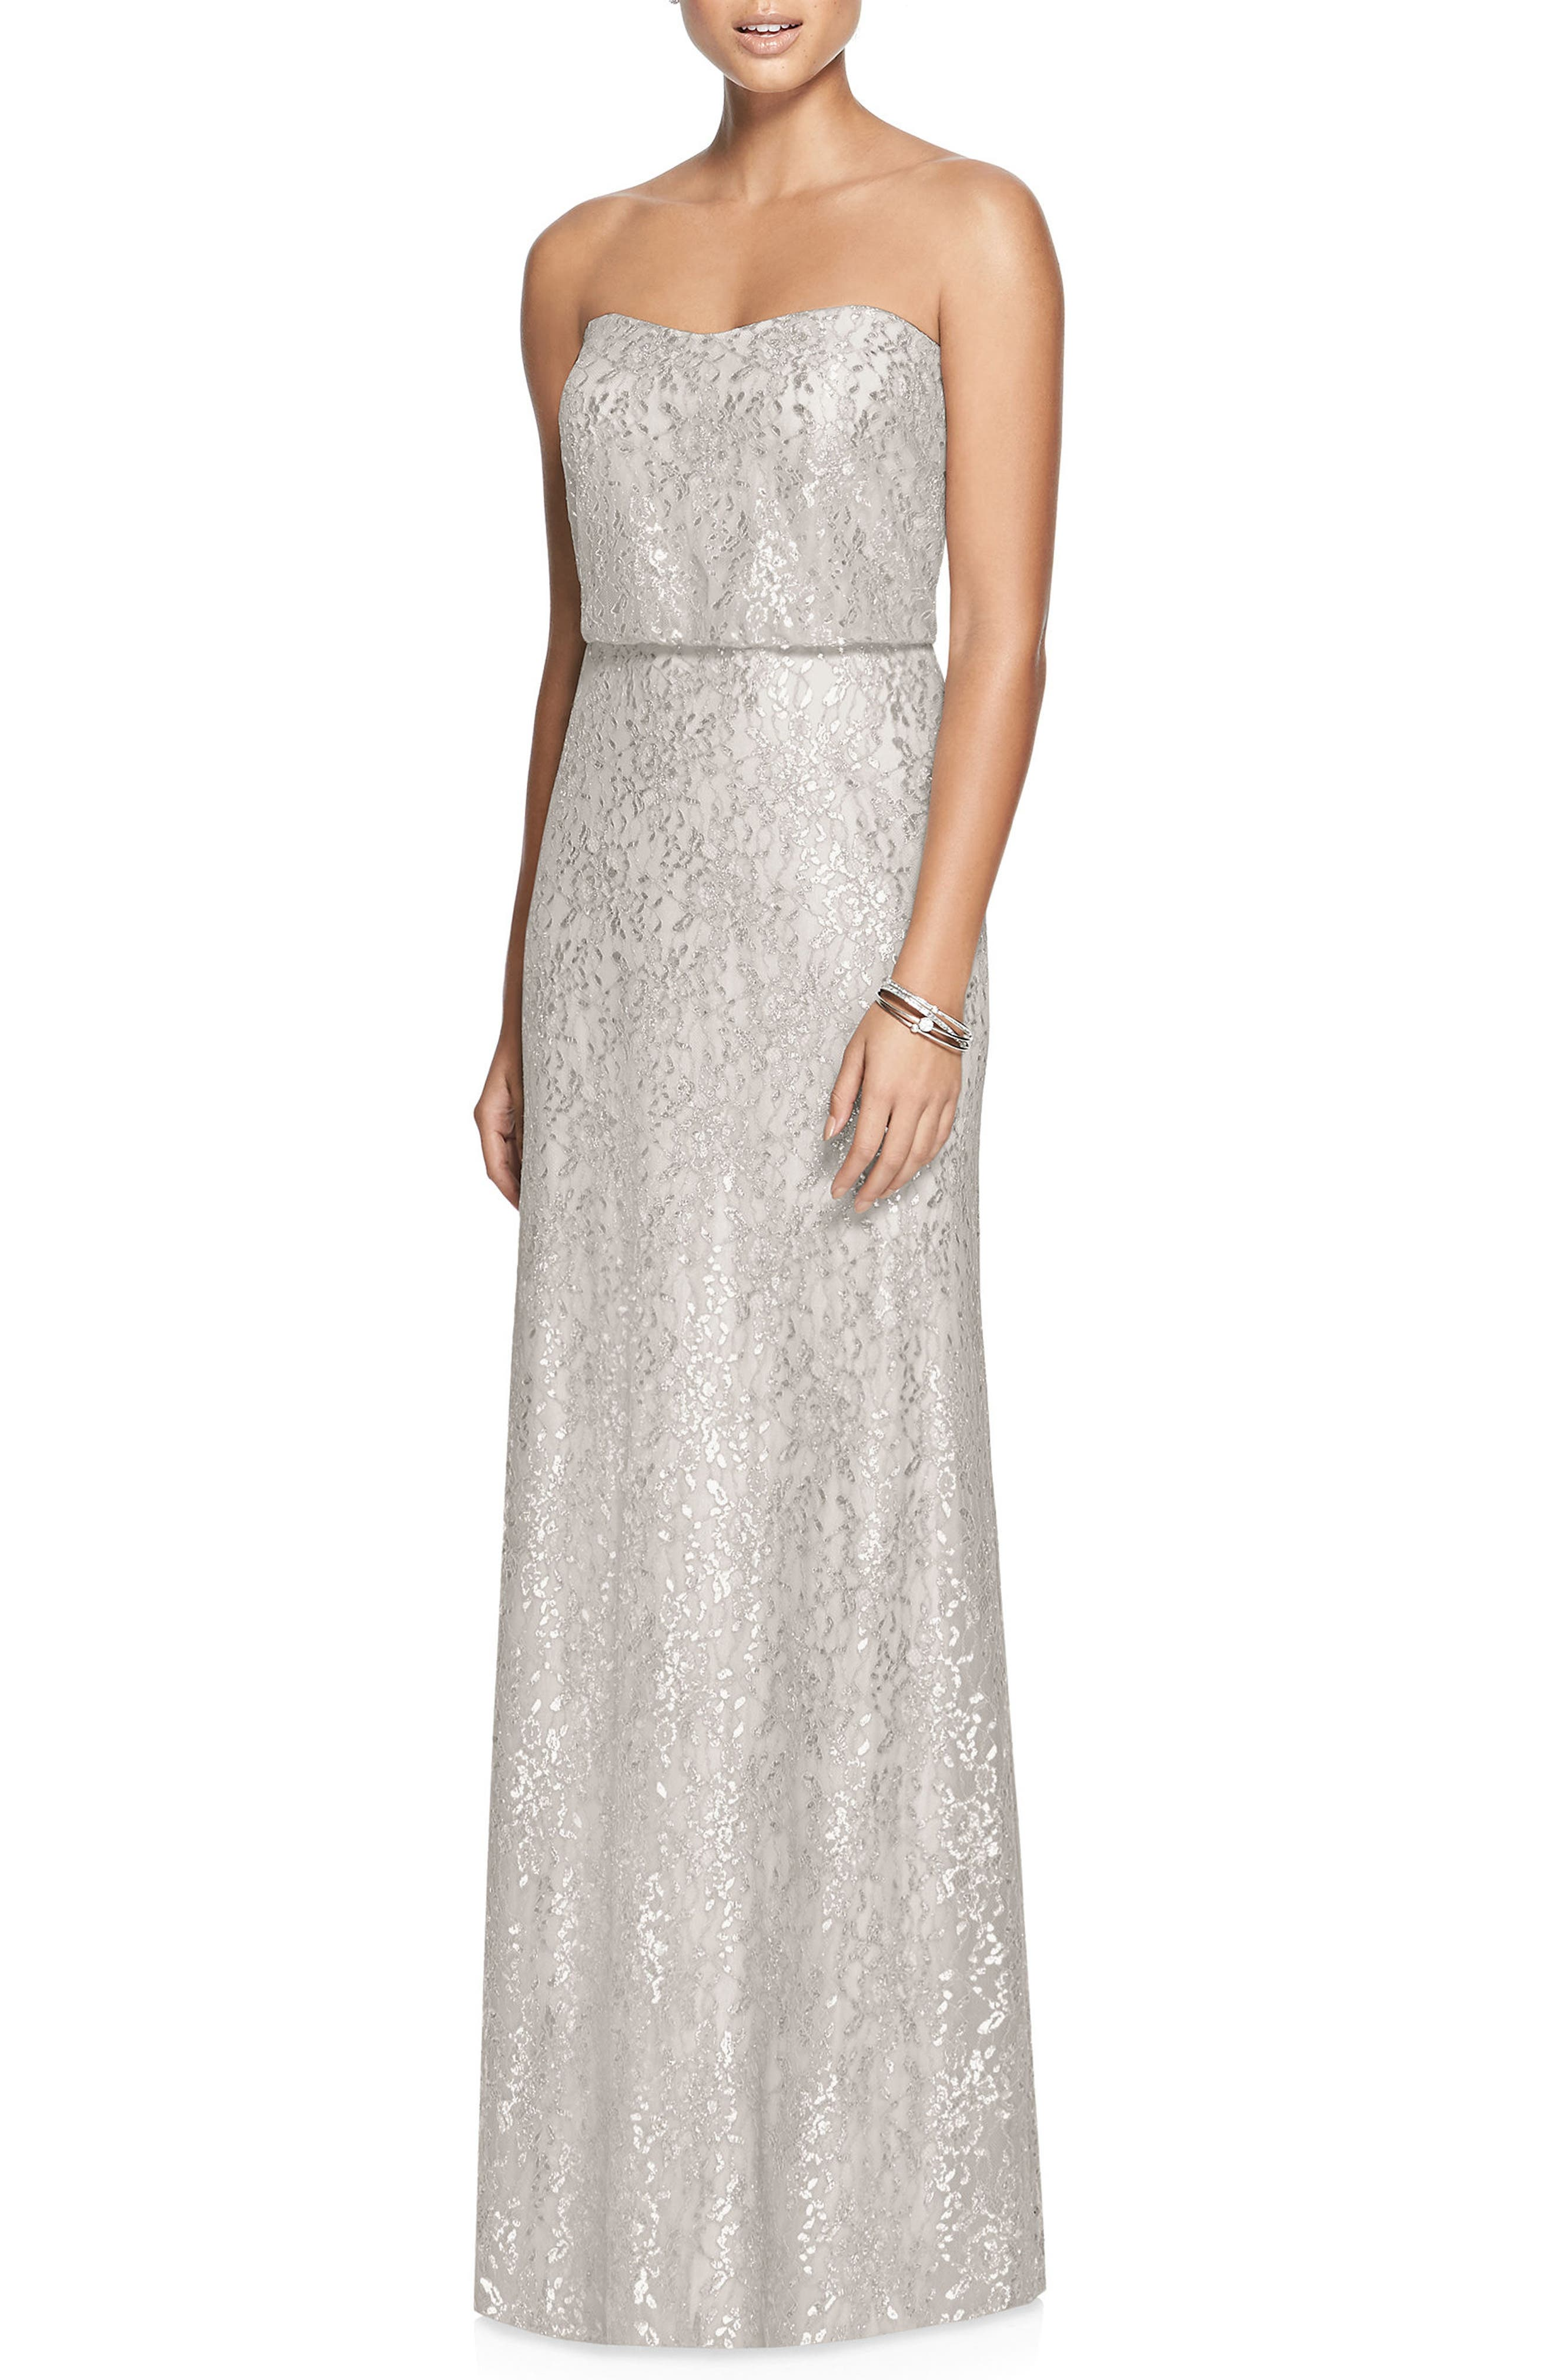 Alternate Image 1 Selected - After Six Metallic Lace Strapless Blouson Gown